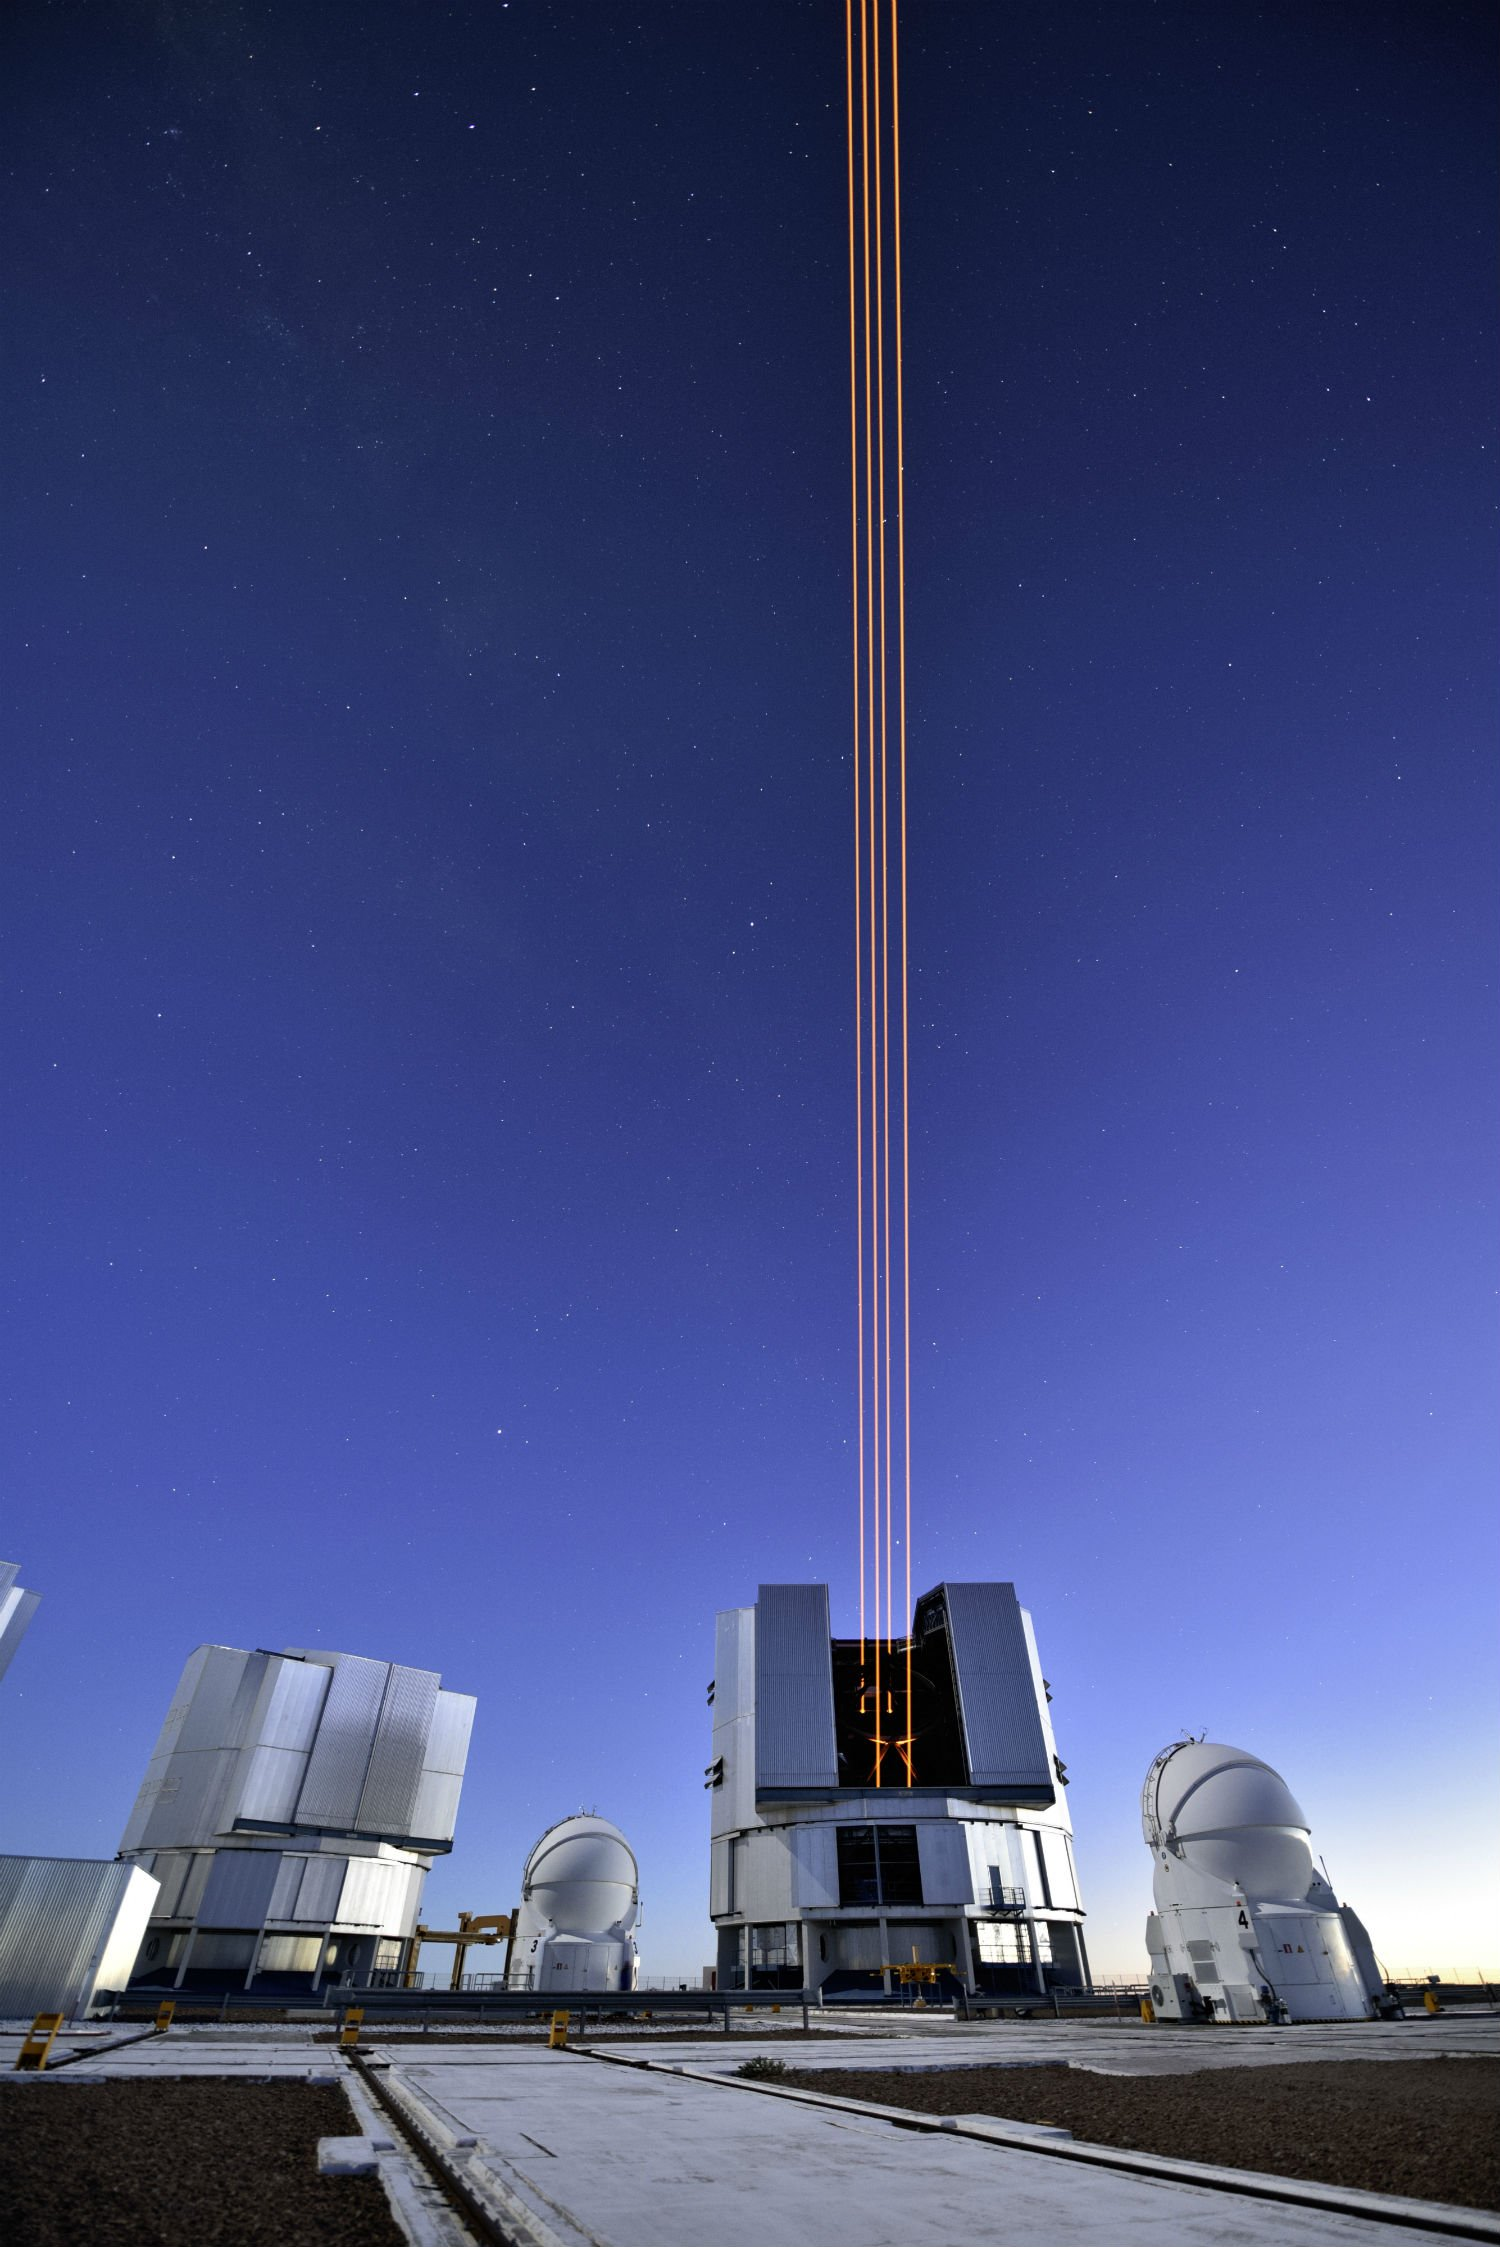 astronomers just created the most powerful artificial star in the